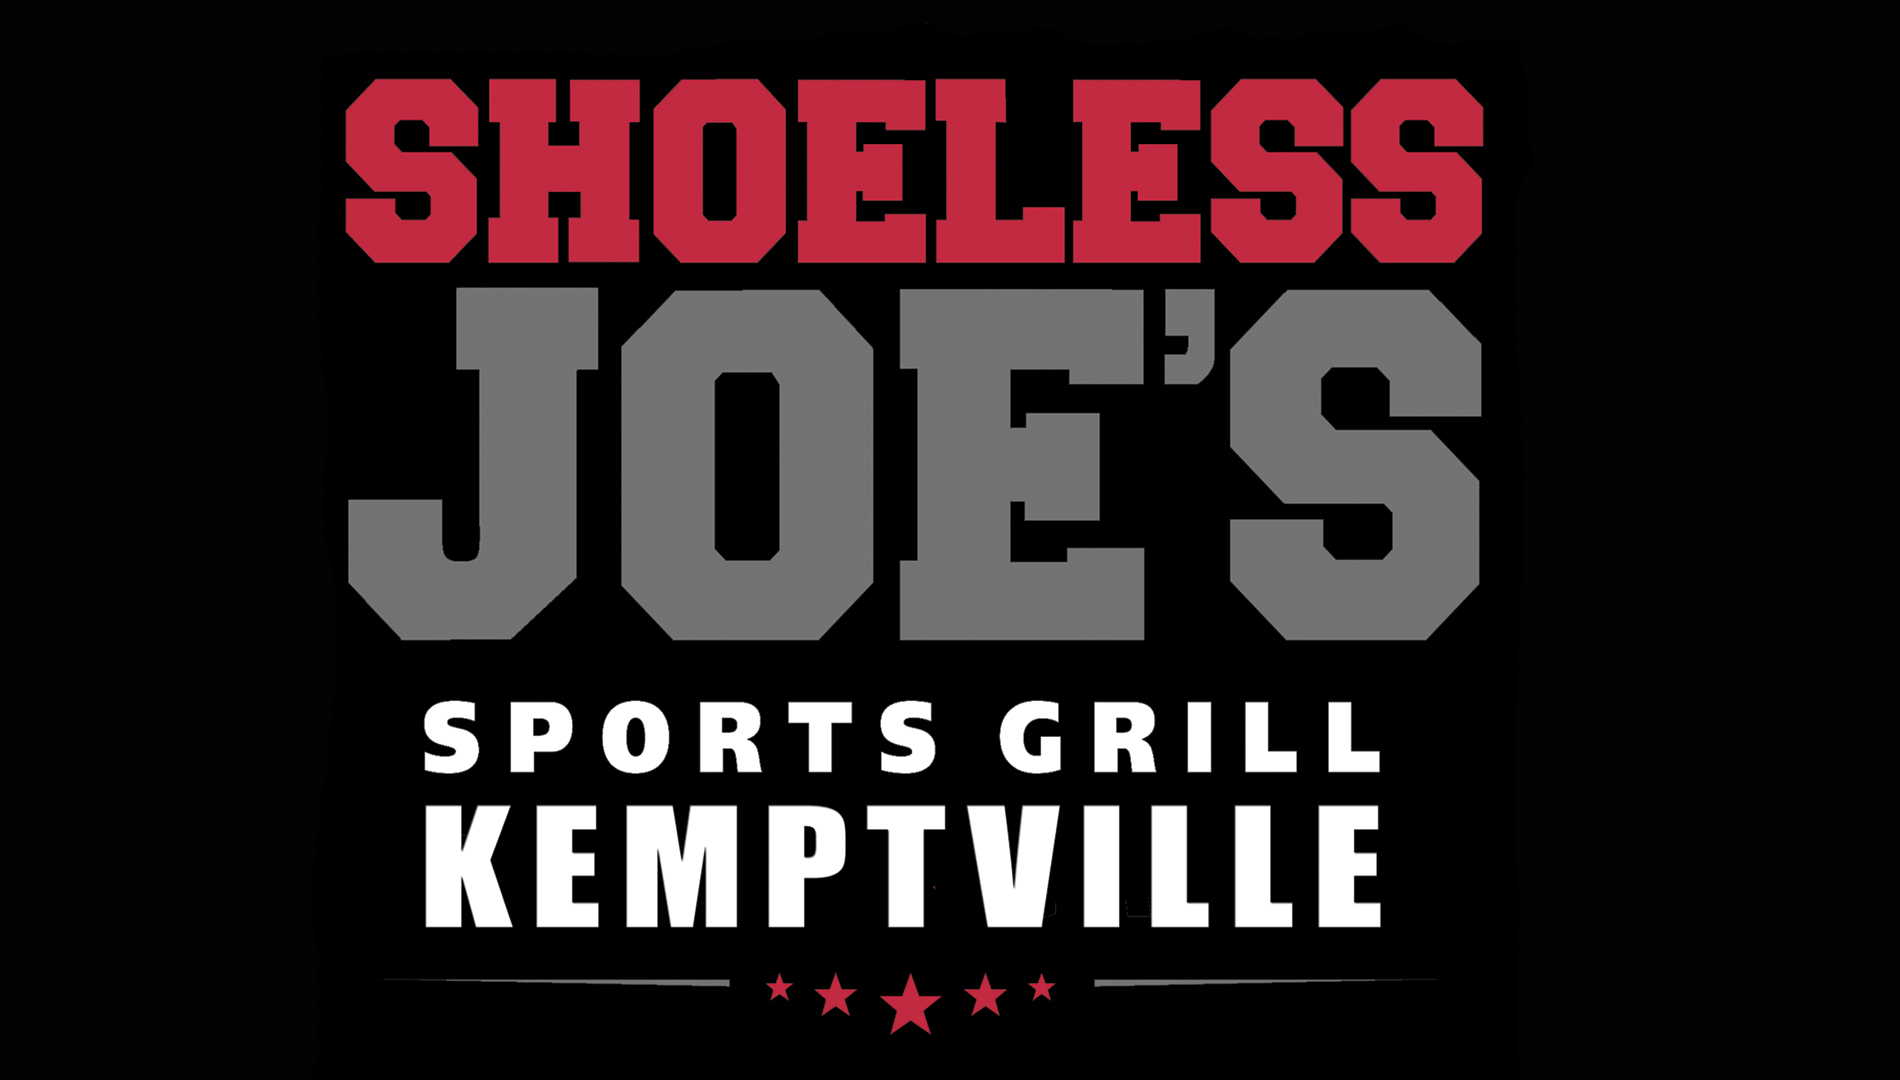 Shoeless Joe's Kemptville